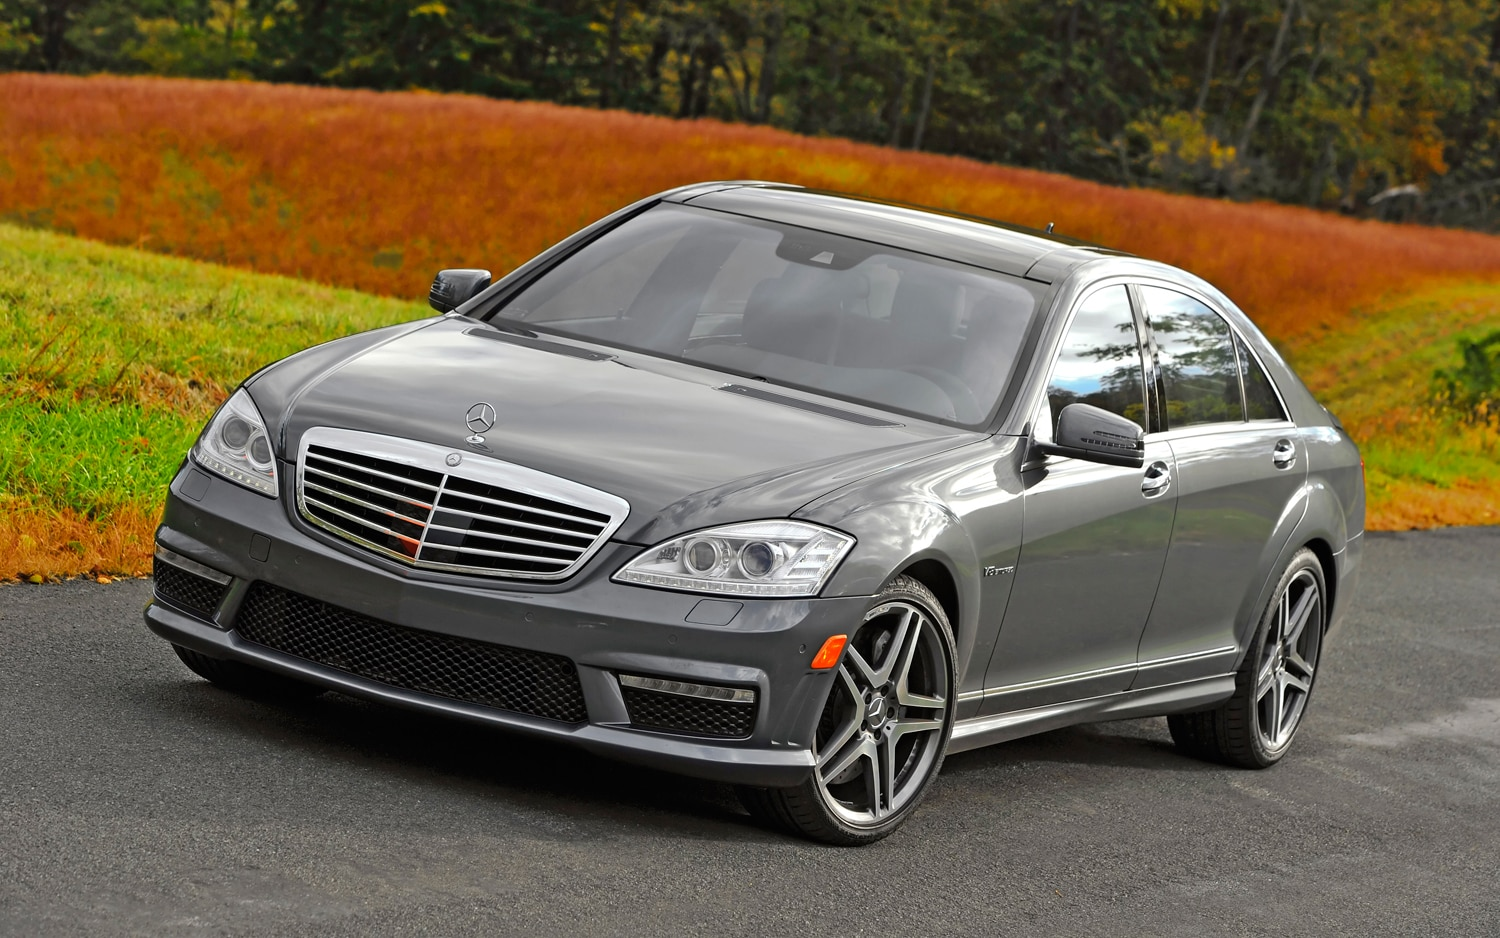 2012 Mercedes Benz S63 AMG Front Left View1